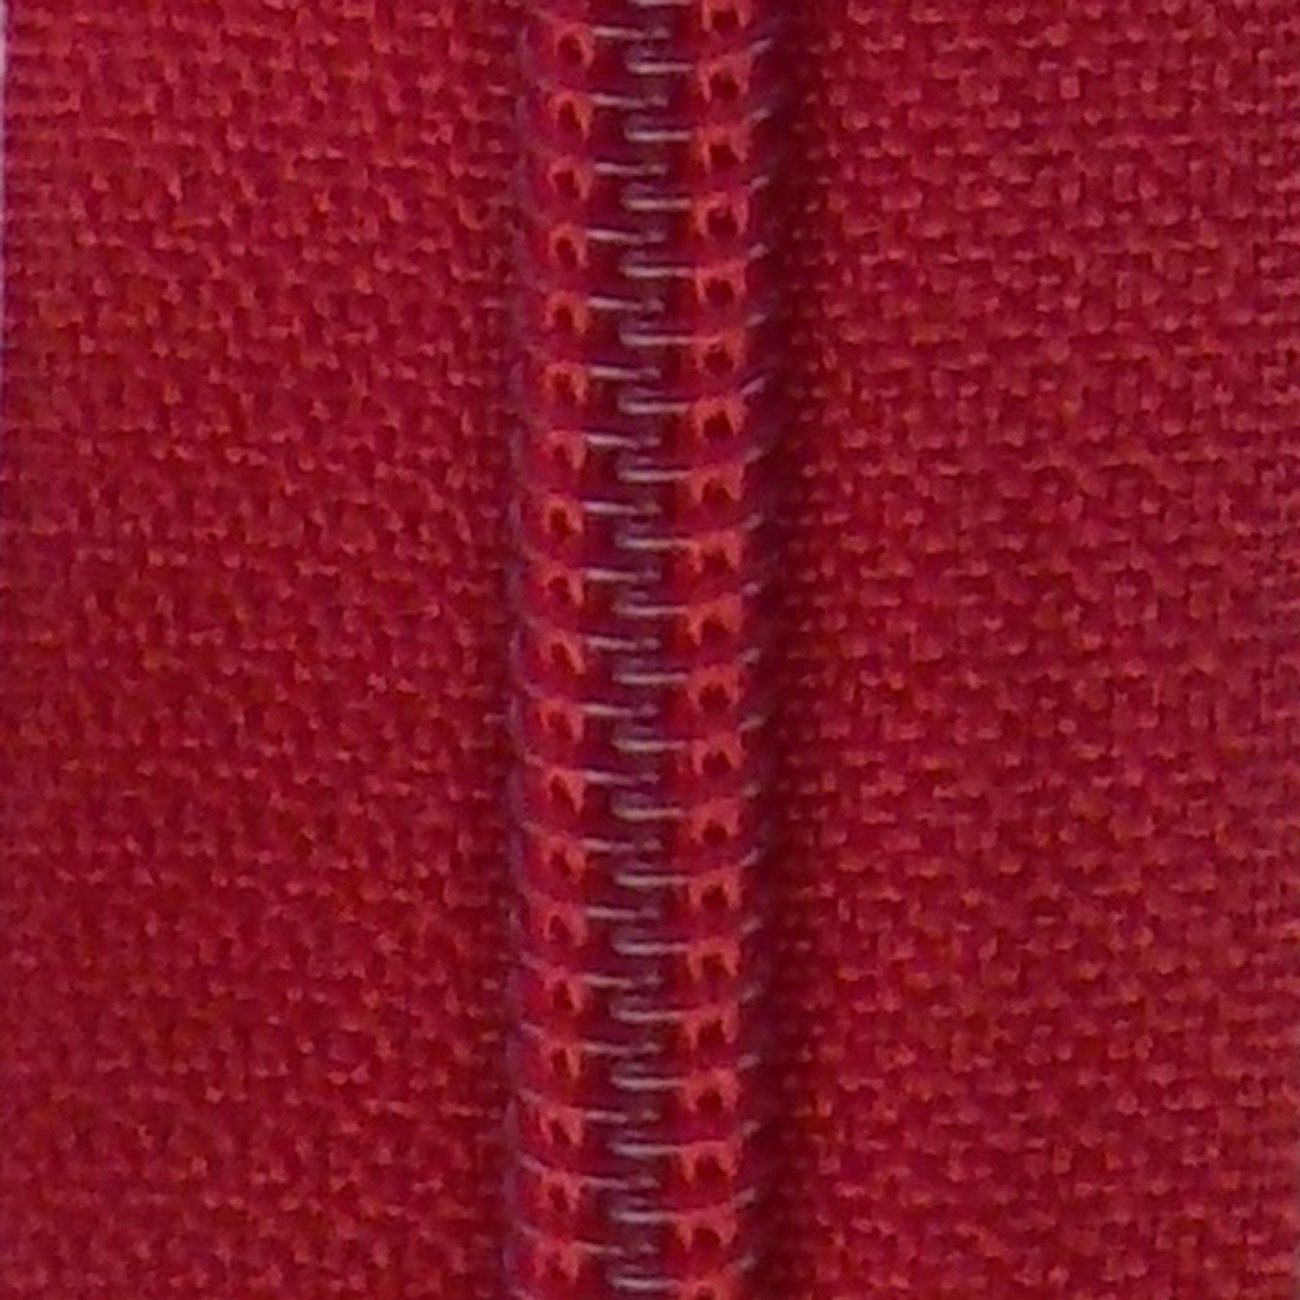 30 Double Pull Non Separating Zipper True Red